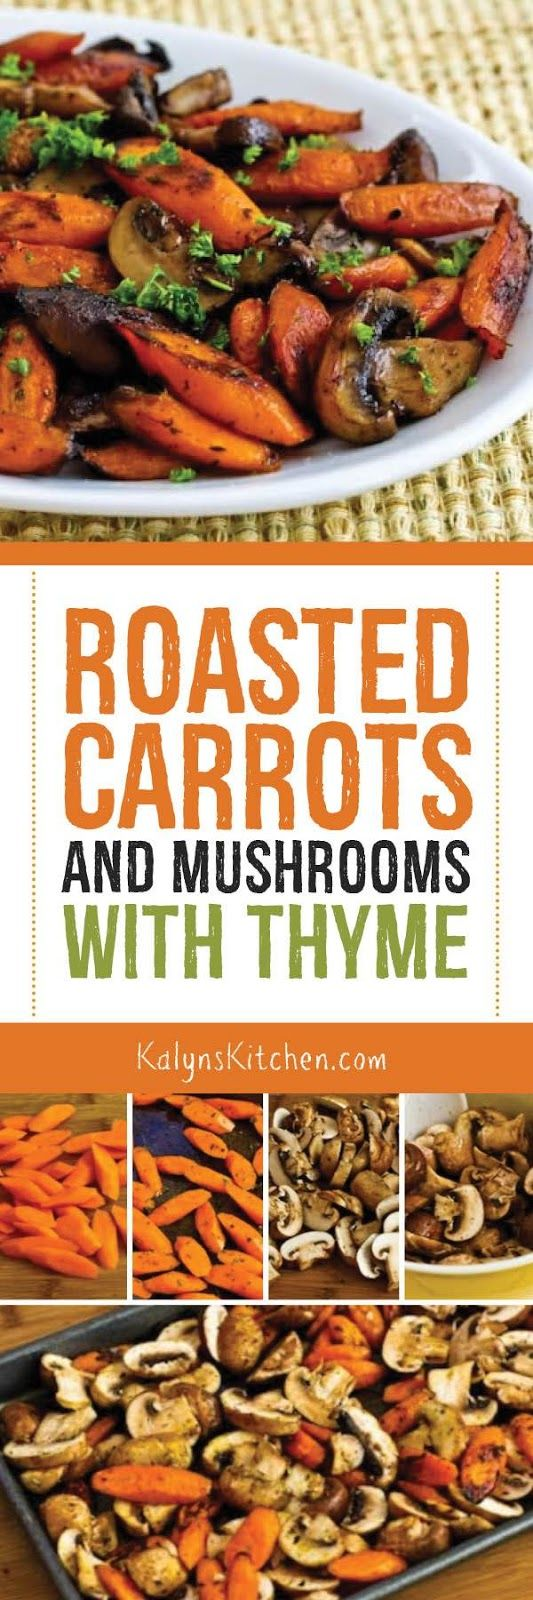 Roasted Carrots and Mushrooms with Thyme are AMAZING for a fall or winter side dish, and these tasty roasted carrots are gluten-free, vegan, Paleo, and Whole 30. If you want a lower-carb version, use less carrots and more mushrooms. [found on KalynsKitchen.com]